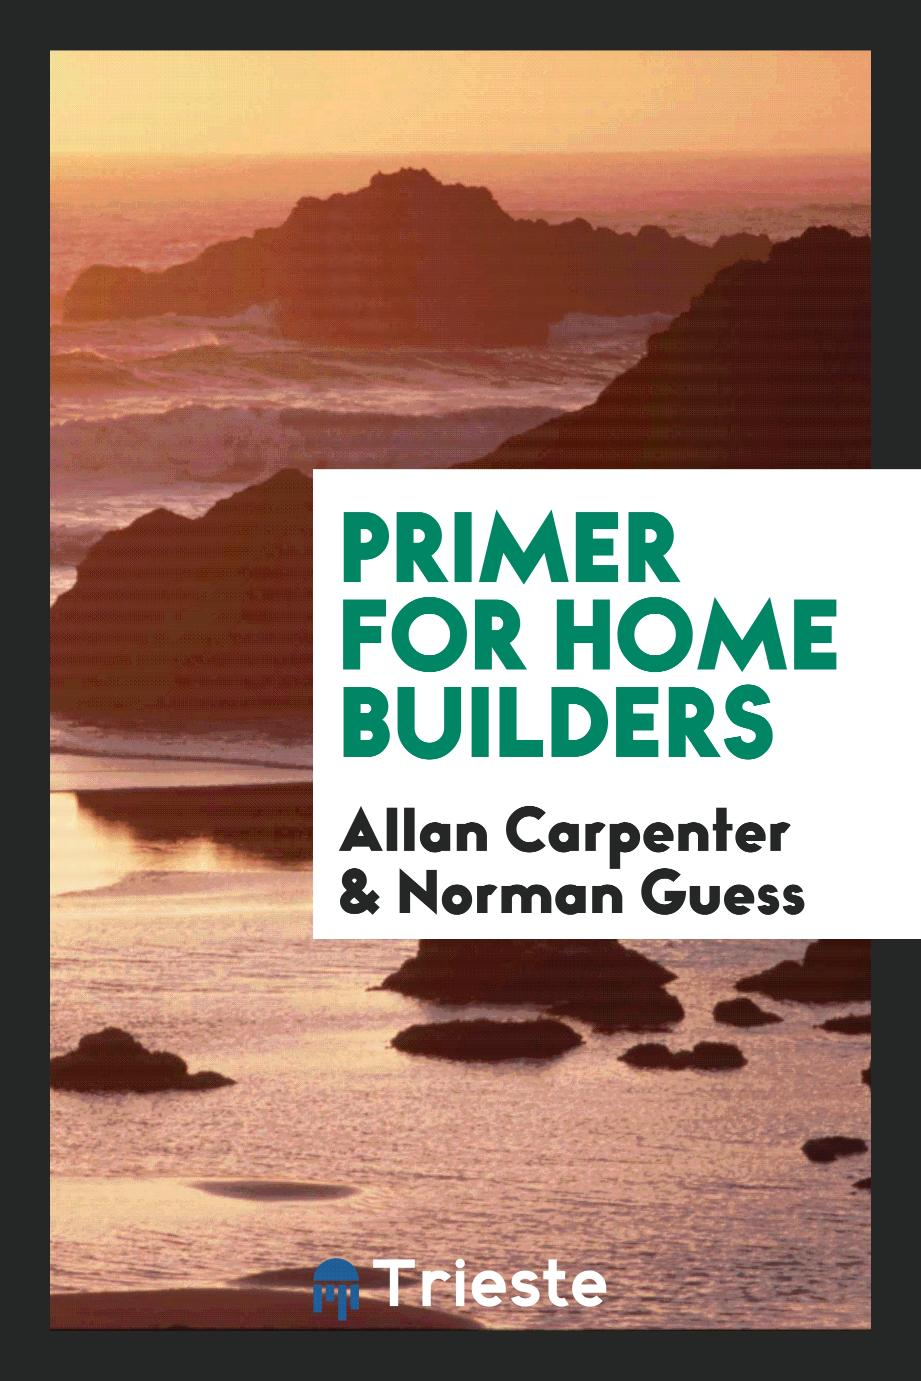 Primer for Home Builders